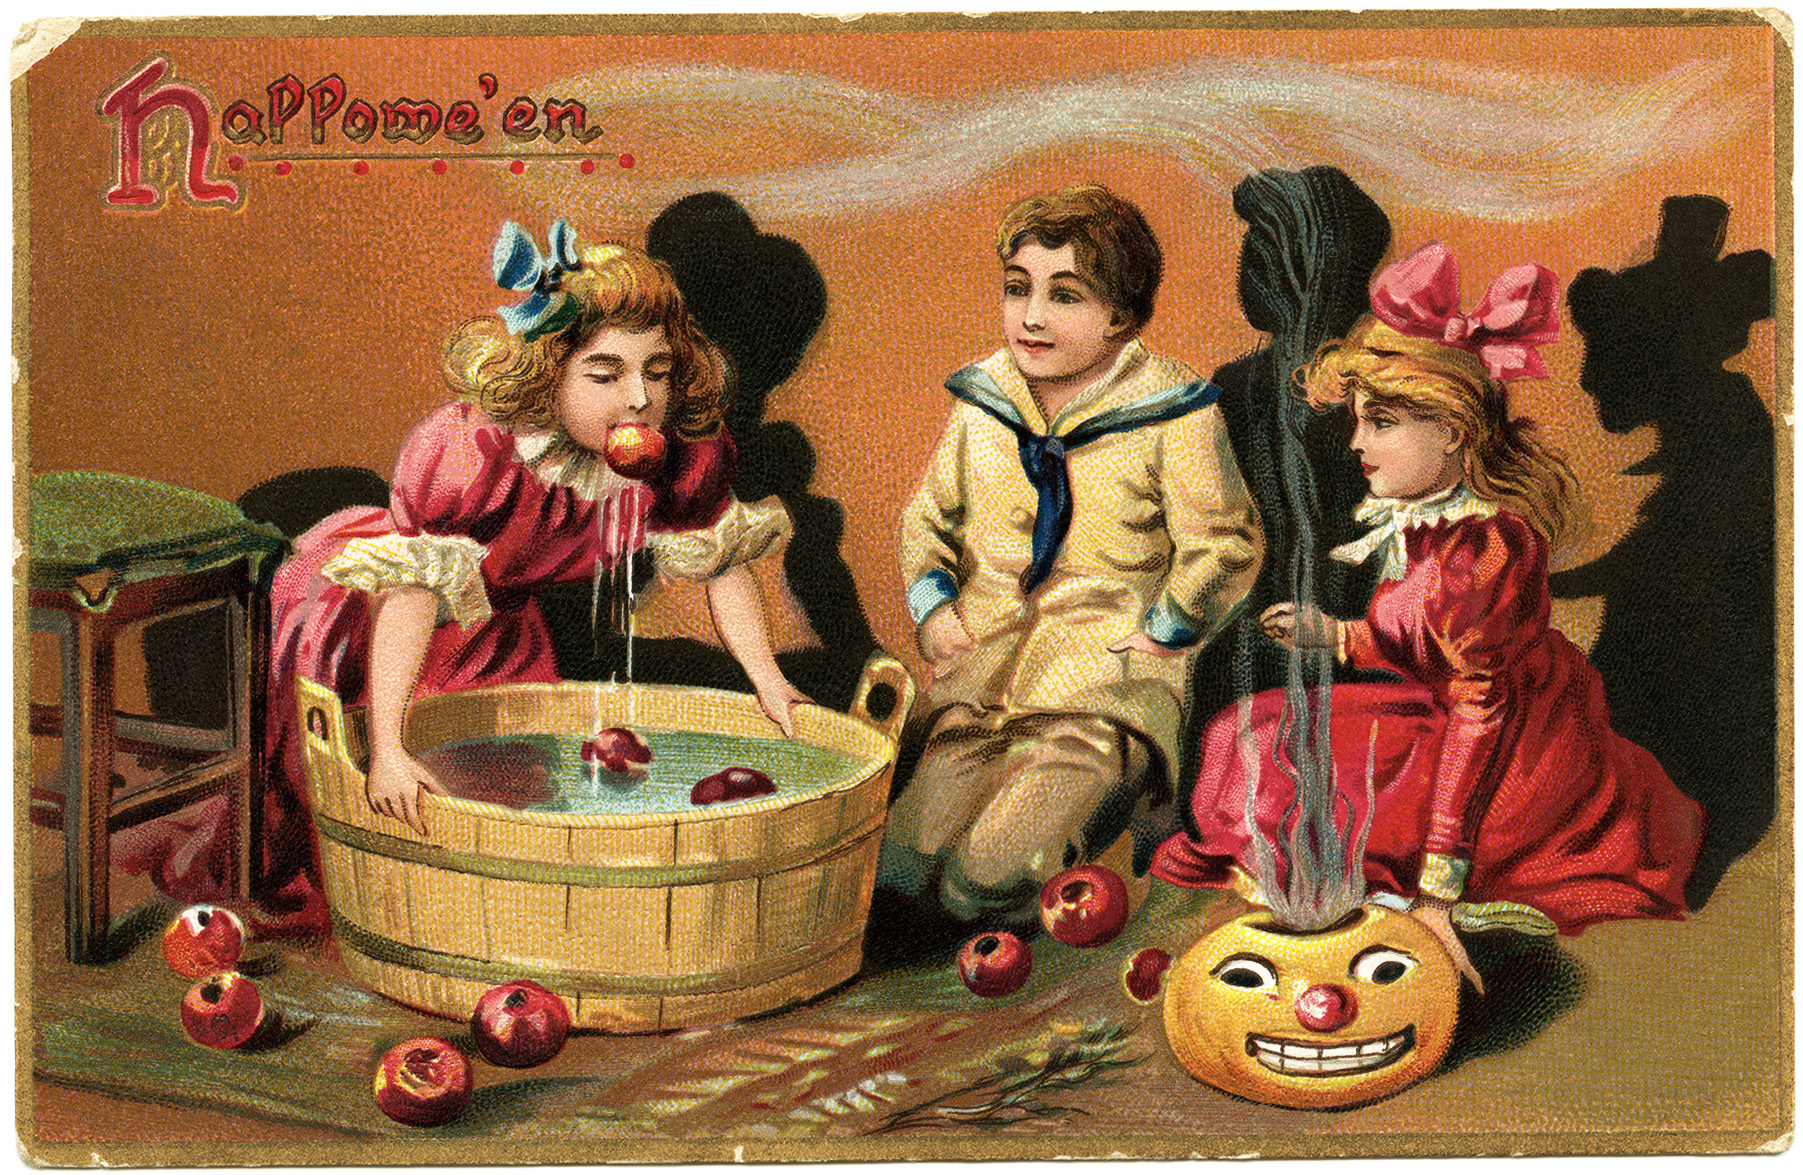 tuck's halloween postcard, apple bobbing image, vintage Hallowe'en graphic, old fashioned halloween printable, Victorian children party